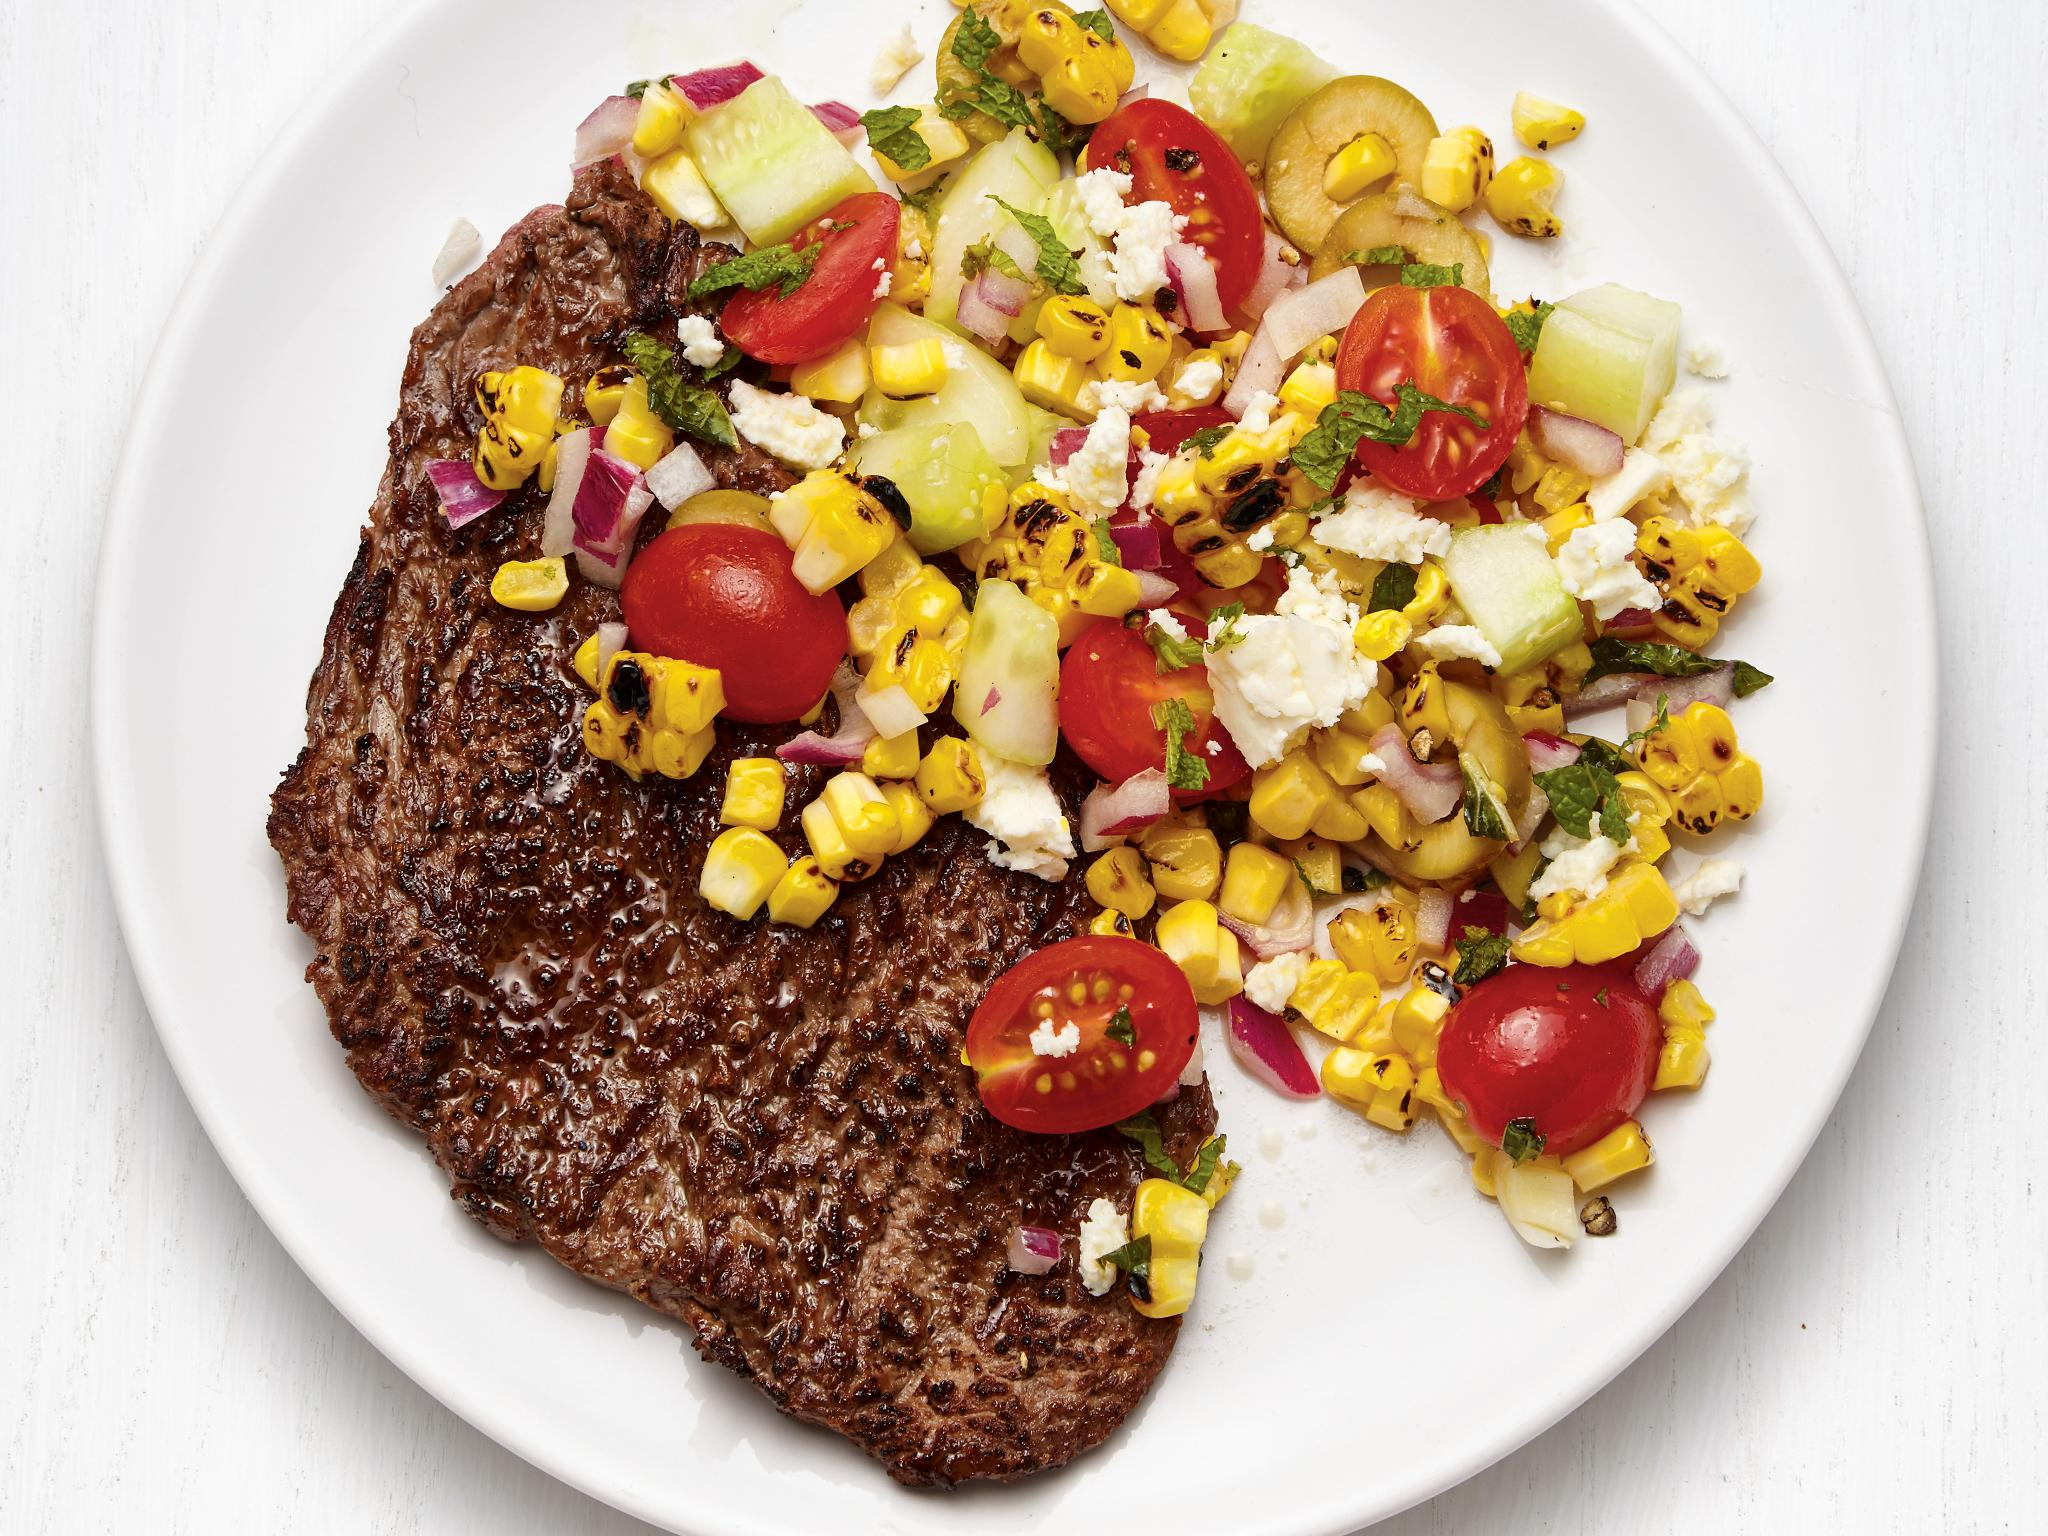 Recipe of the Day: Grilled Steak with Greek Corn Salad ���� https://t.co/nwWCW0JE2s. https://t.co/jPOaVDvl6E